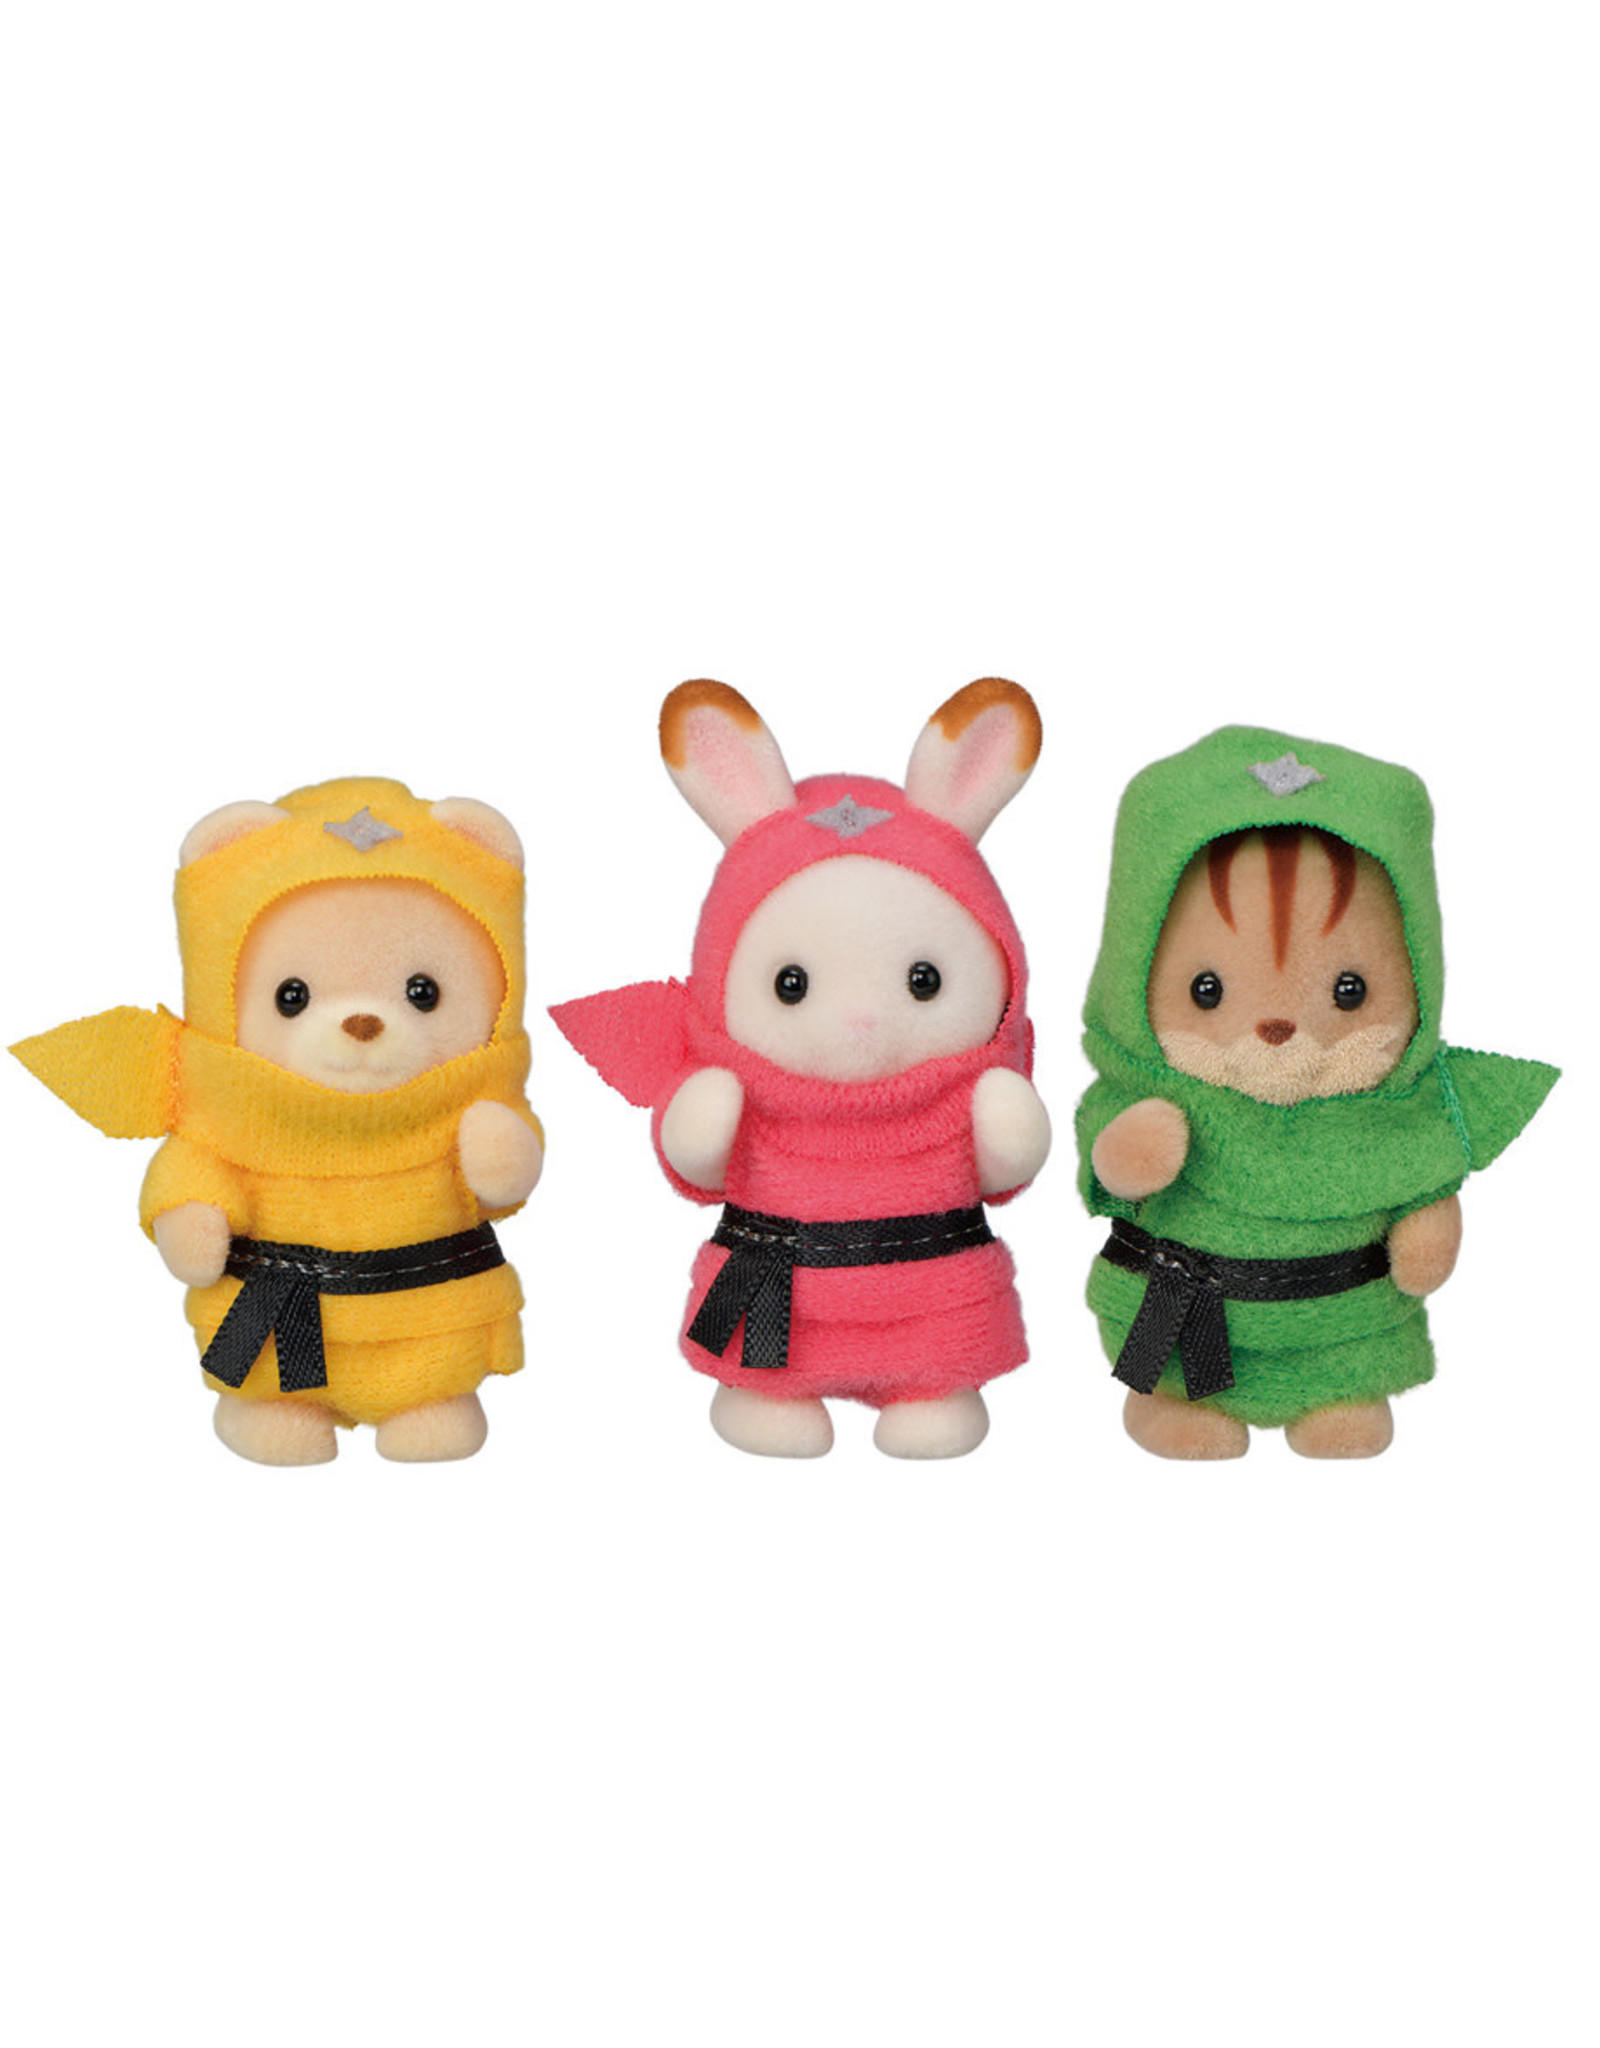 Calico Critters Calico Critters Baby Trio Ninjas